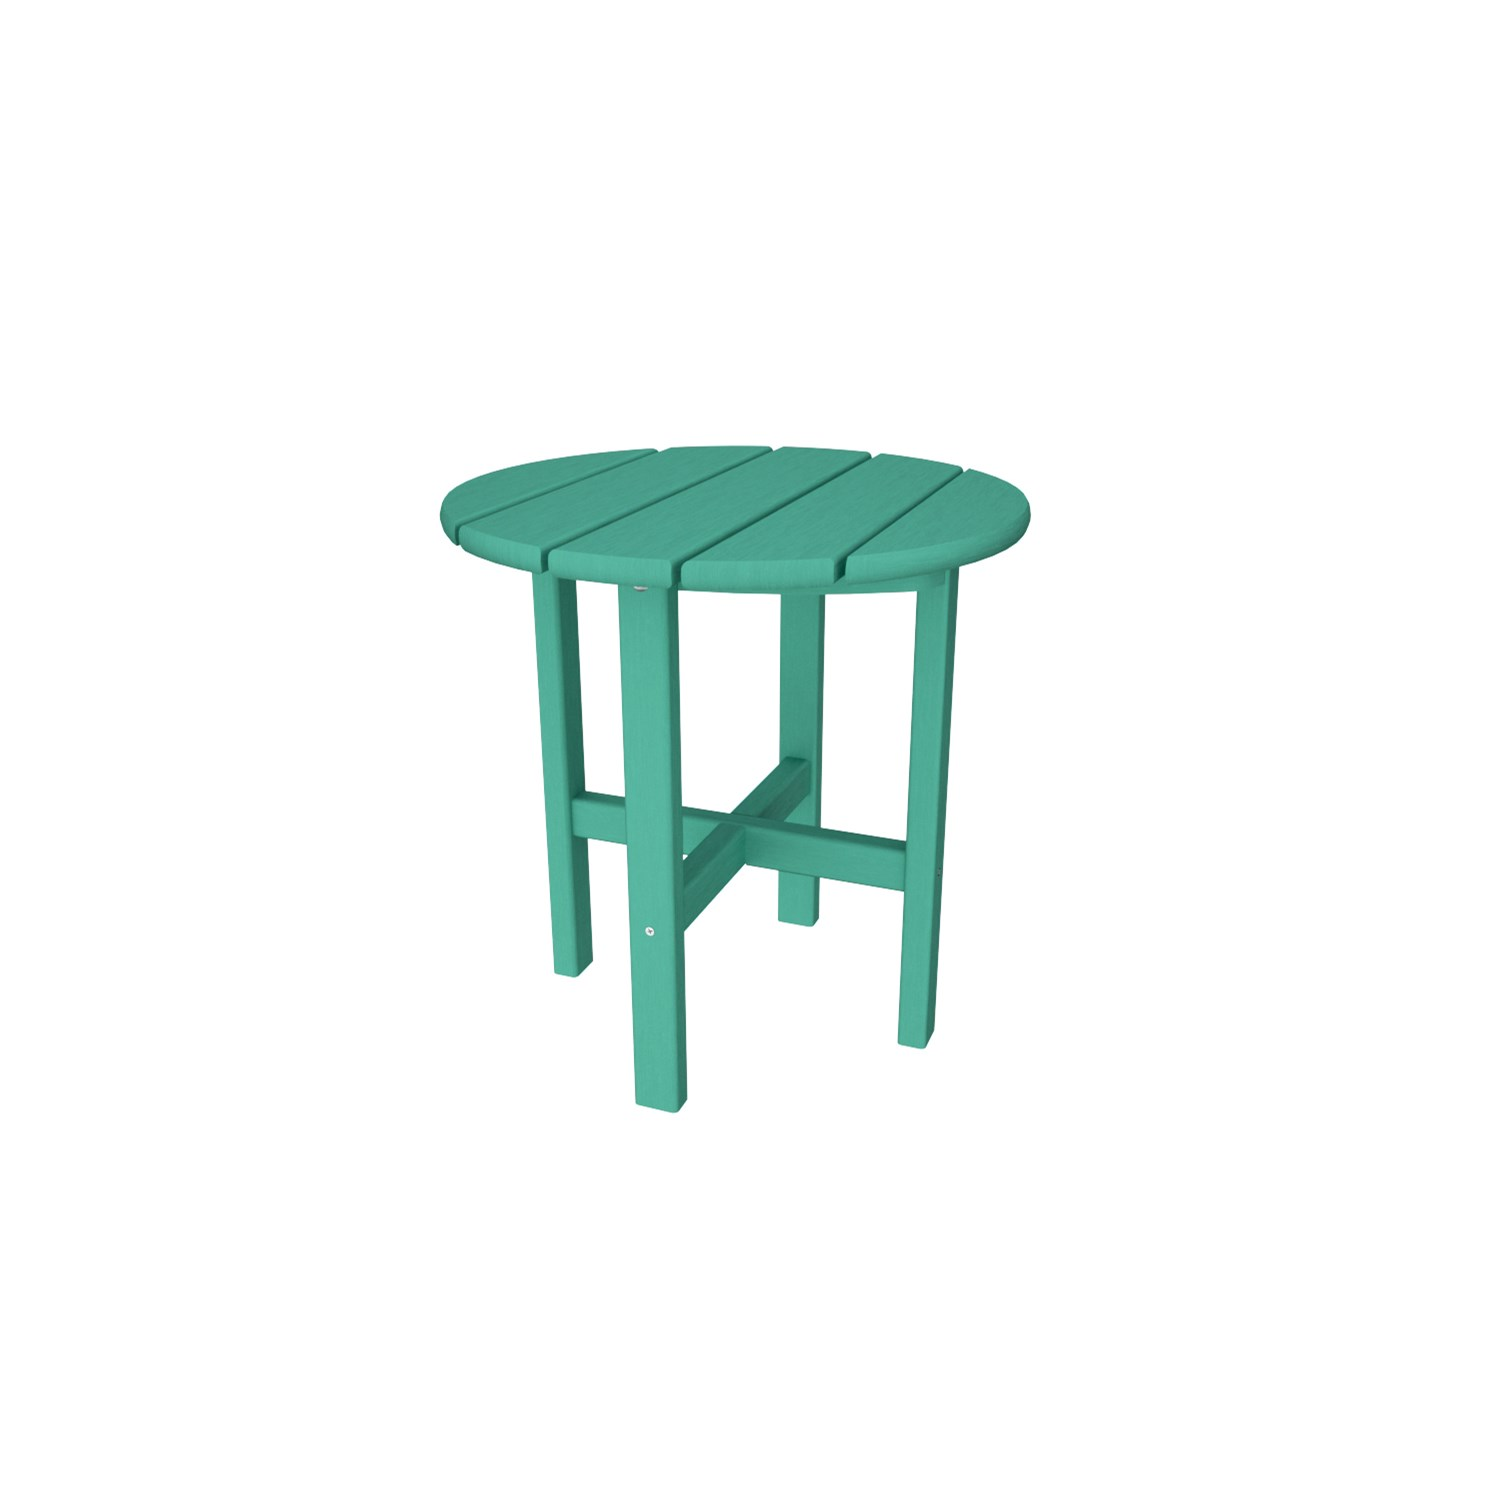 polywood round outdoor side table the simple white green tap expand backyard cooler bathroom furniture covers modular bedroom monarch specialties hall console wine bar next dining